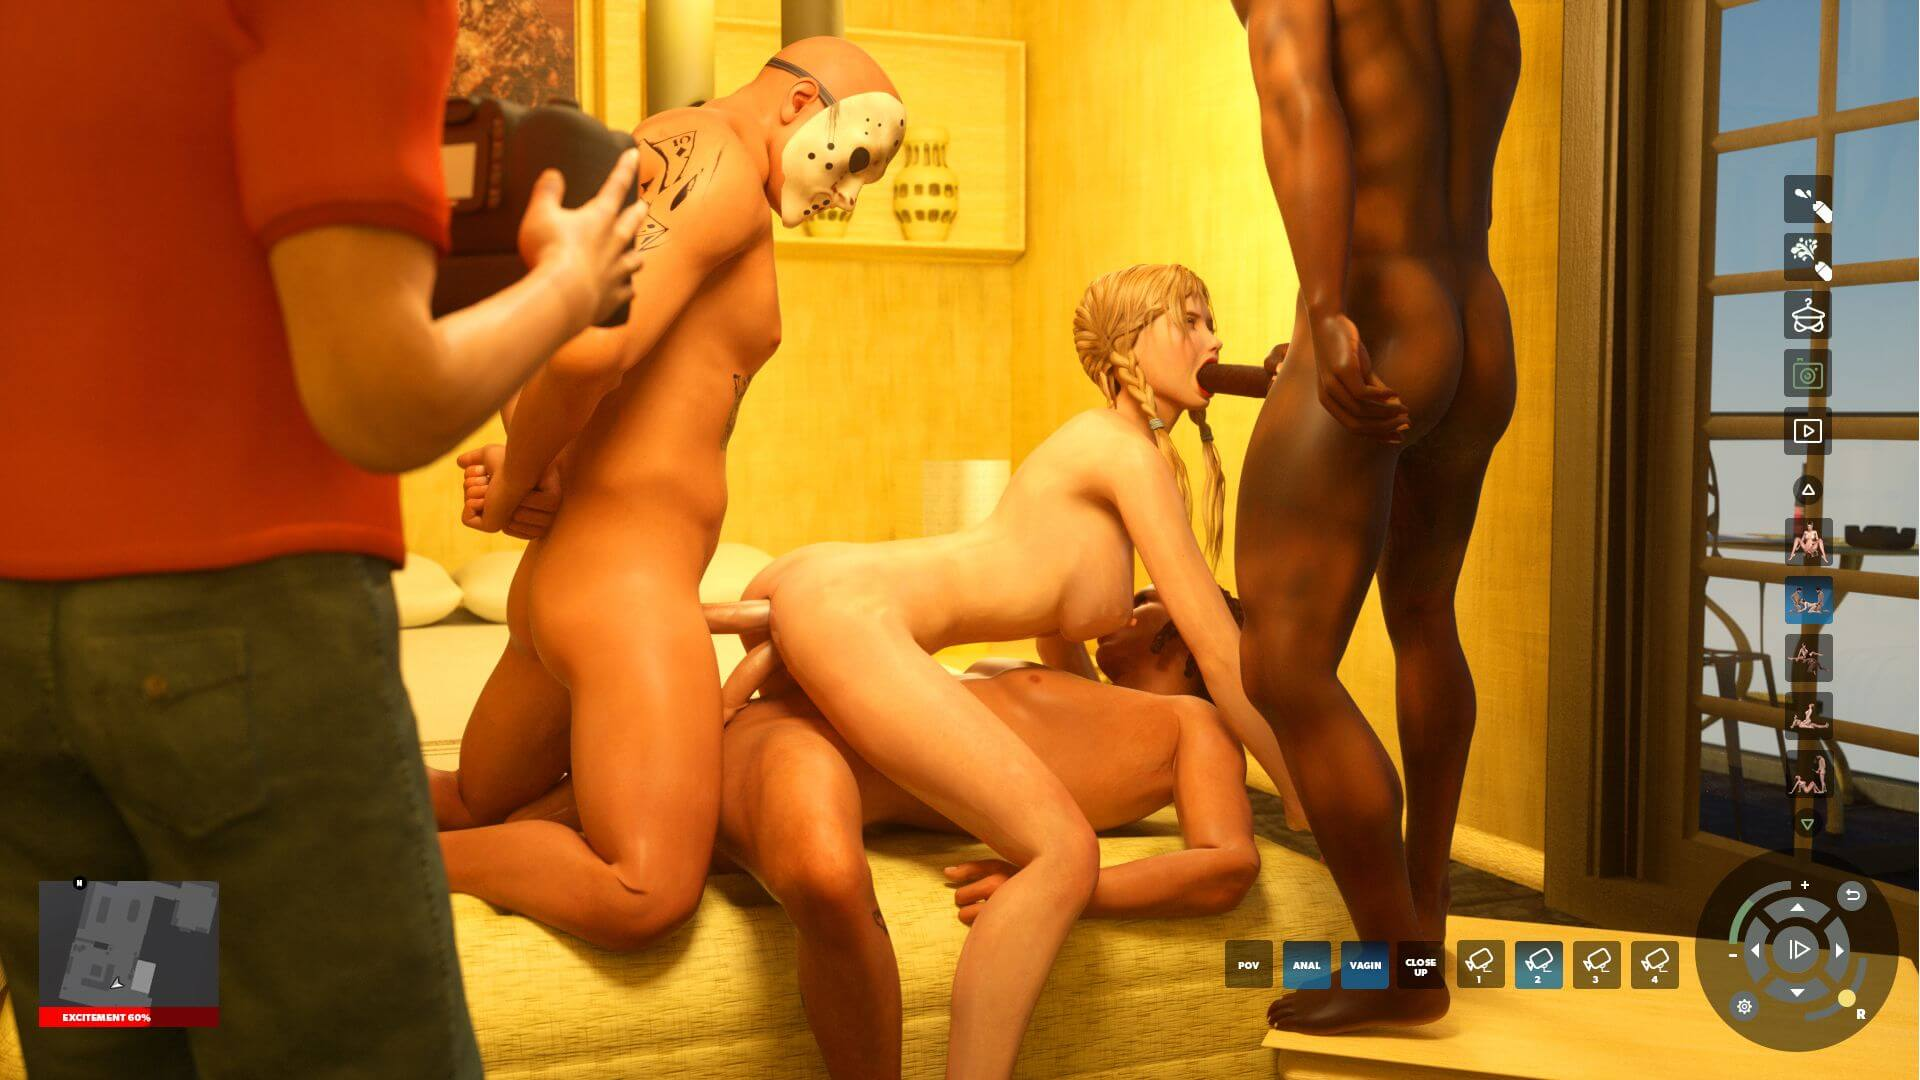 Free 3d sex flash games naked comic